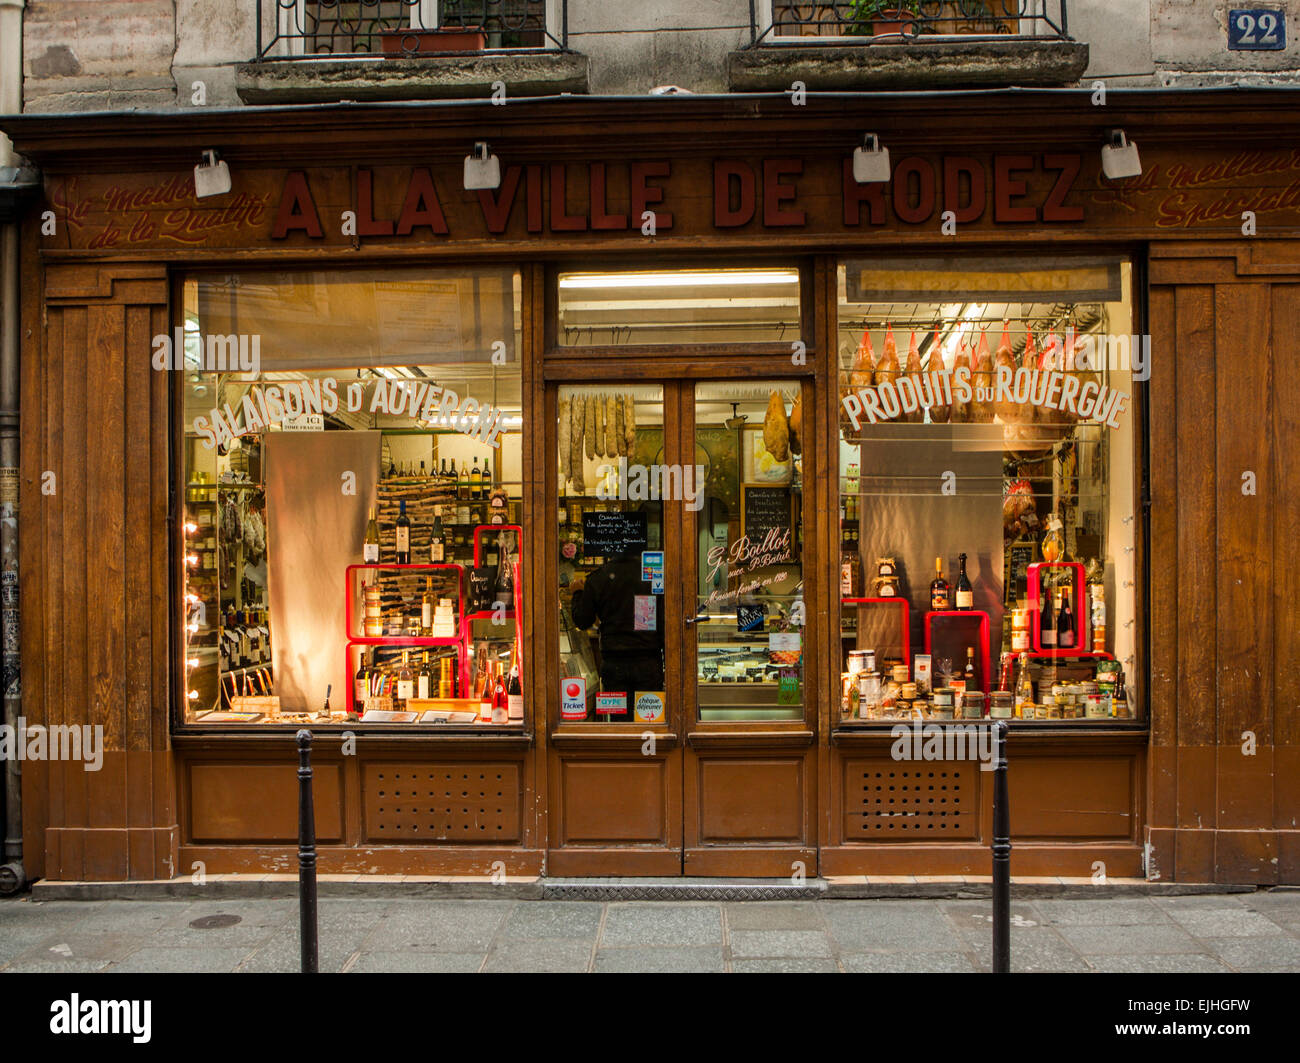 Shop front of specialist food and wine shop, Paris, France - Stock Image